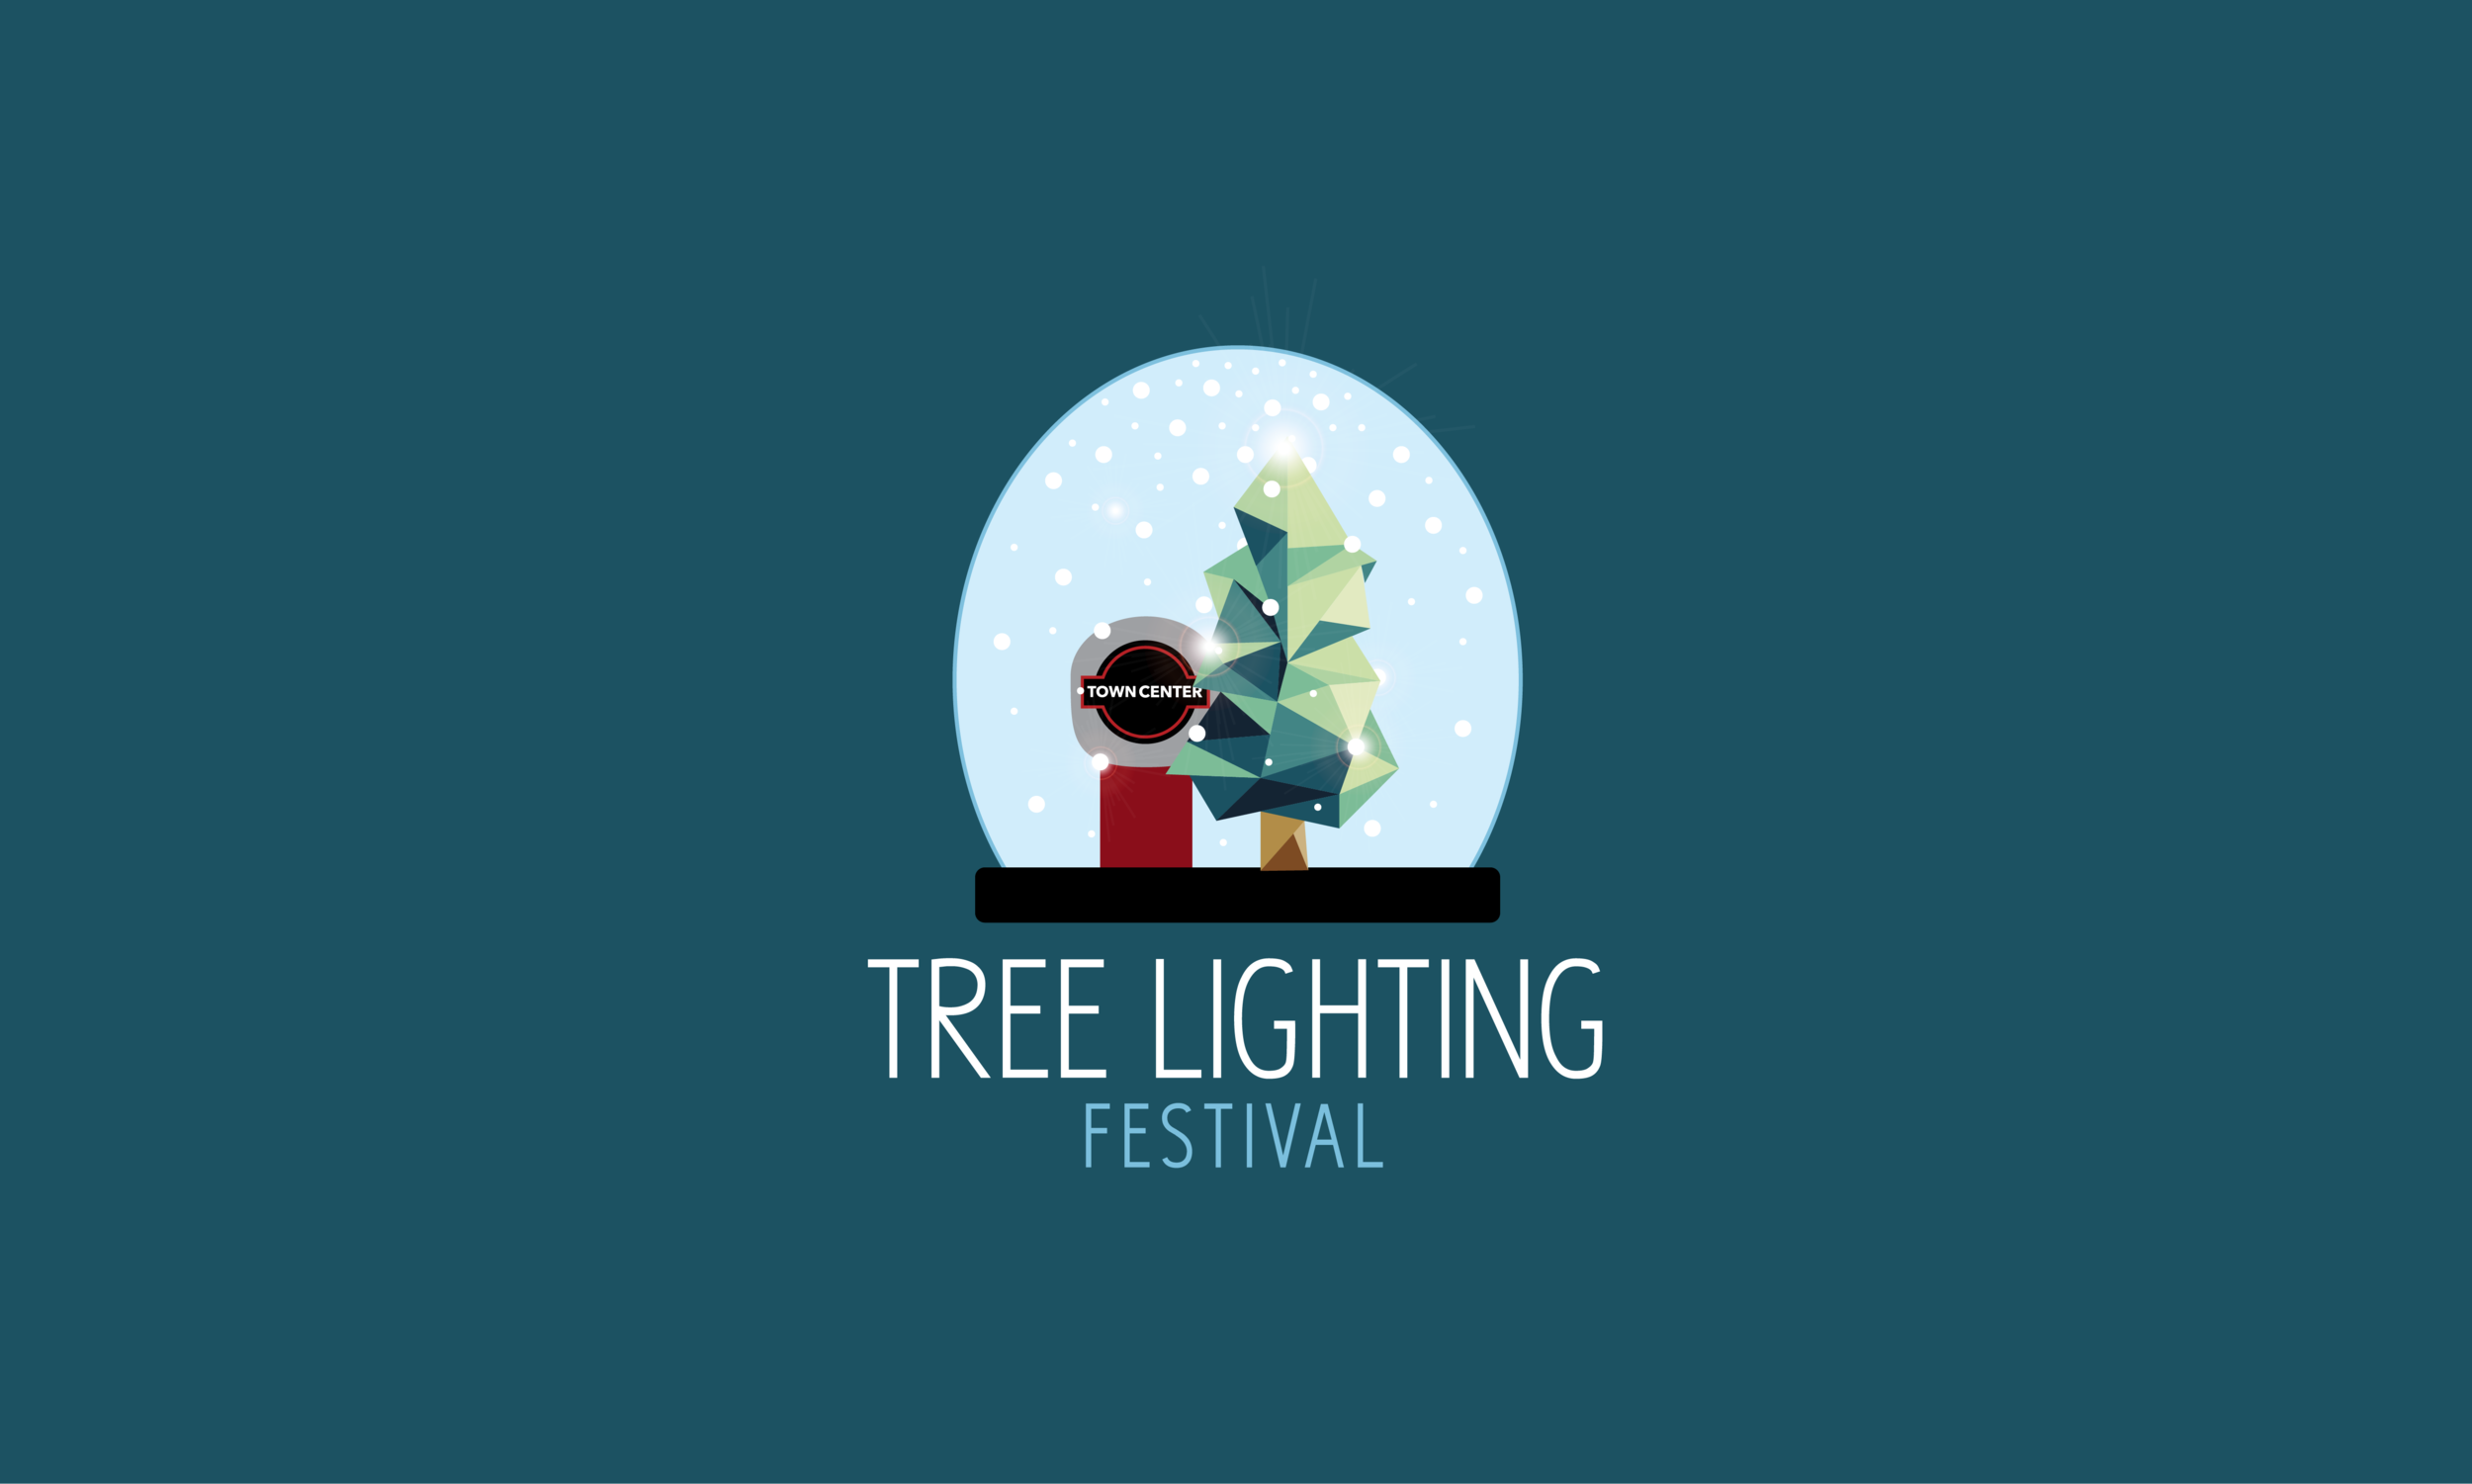 tree lighting pic for app.jpg